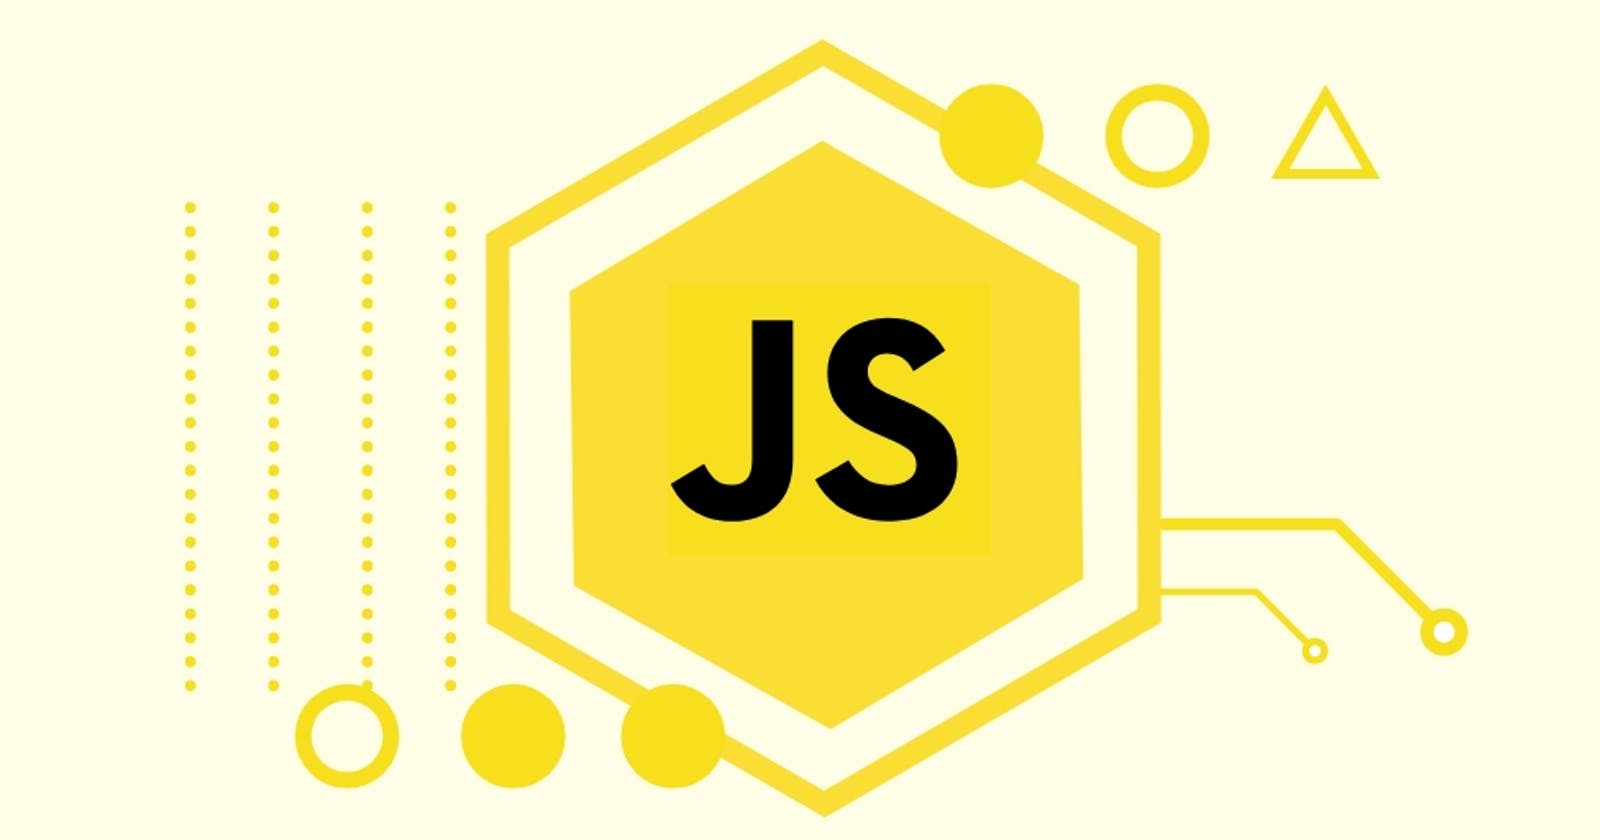 5 JavaScript libraries to try in 2021